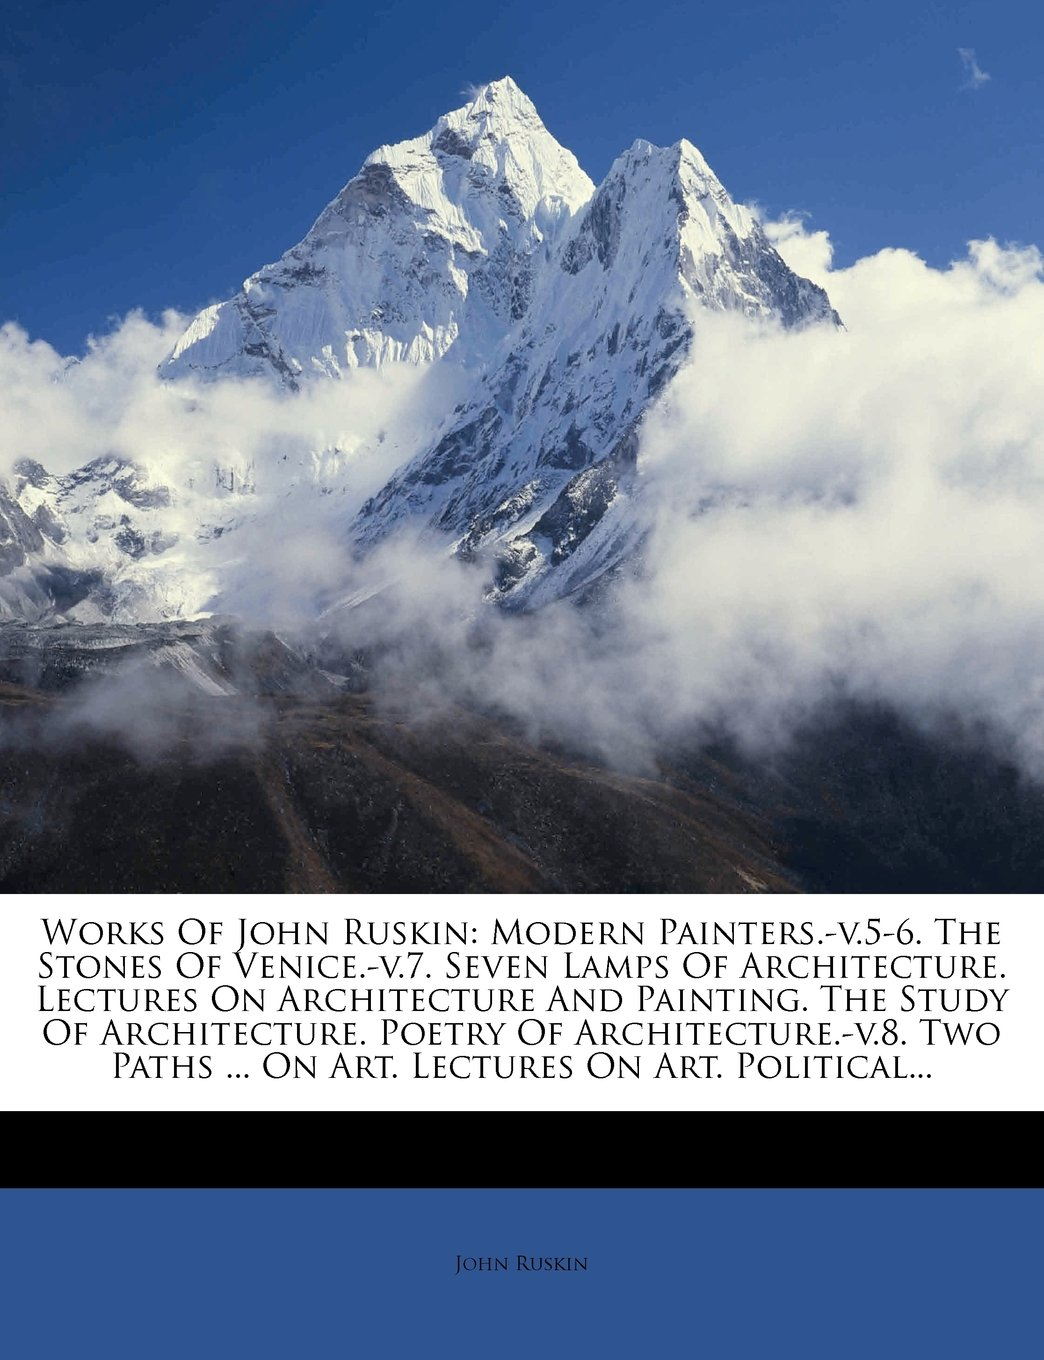 Works Of John Ruskin: Modern Painters.-v.5-6. The Stones Of Venice.-v.7. Seven Lamps Of Architecture. Lectures On Architecture And Painting. The Study ... ... On Art. Lectures On Art. Political... Text fb2 ebook